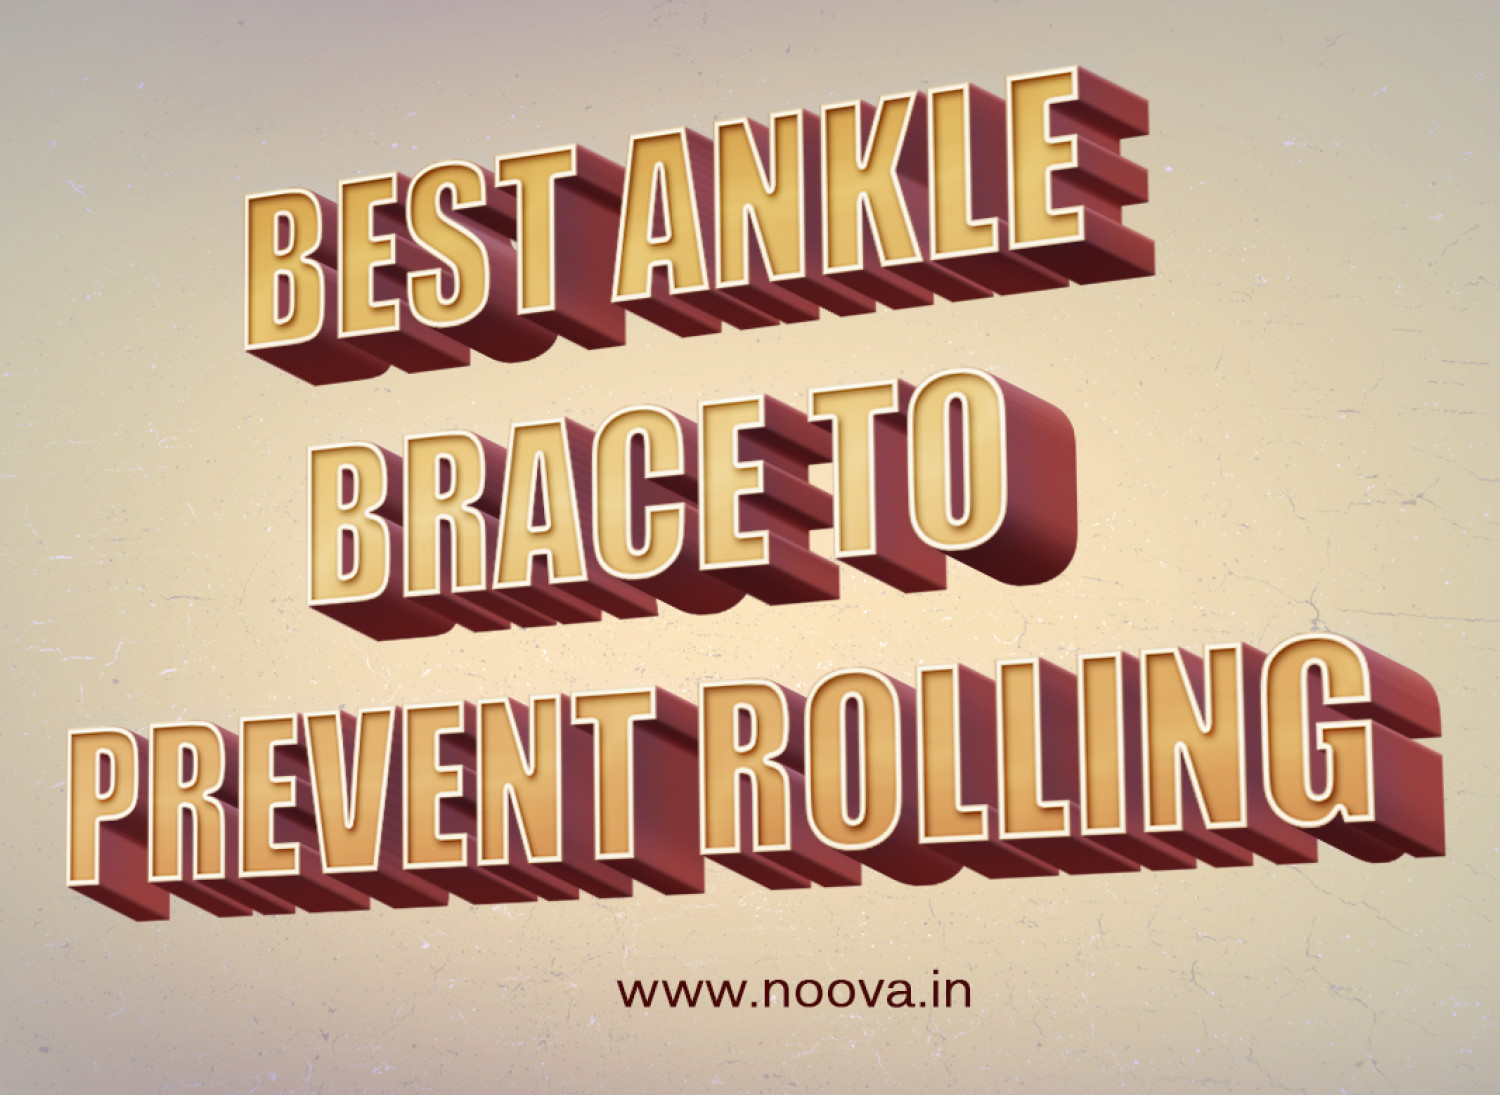 Best Ankle Brace To Prevent Rolling Infographic